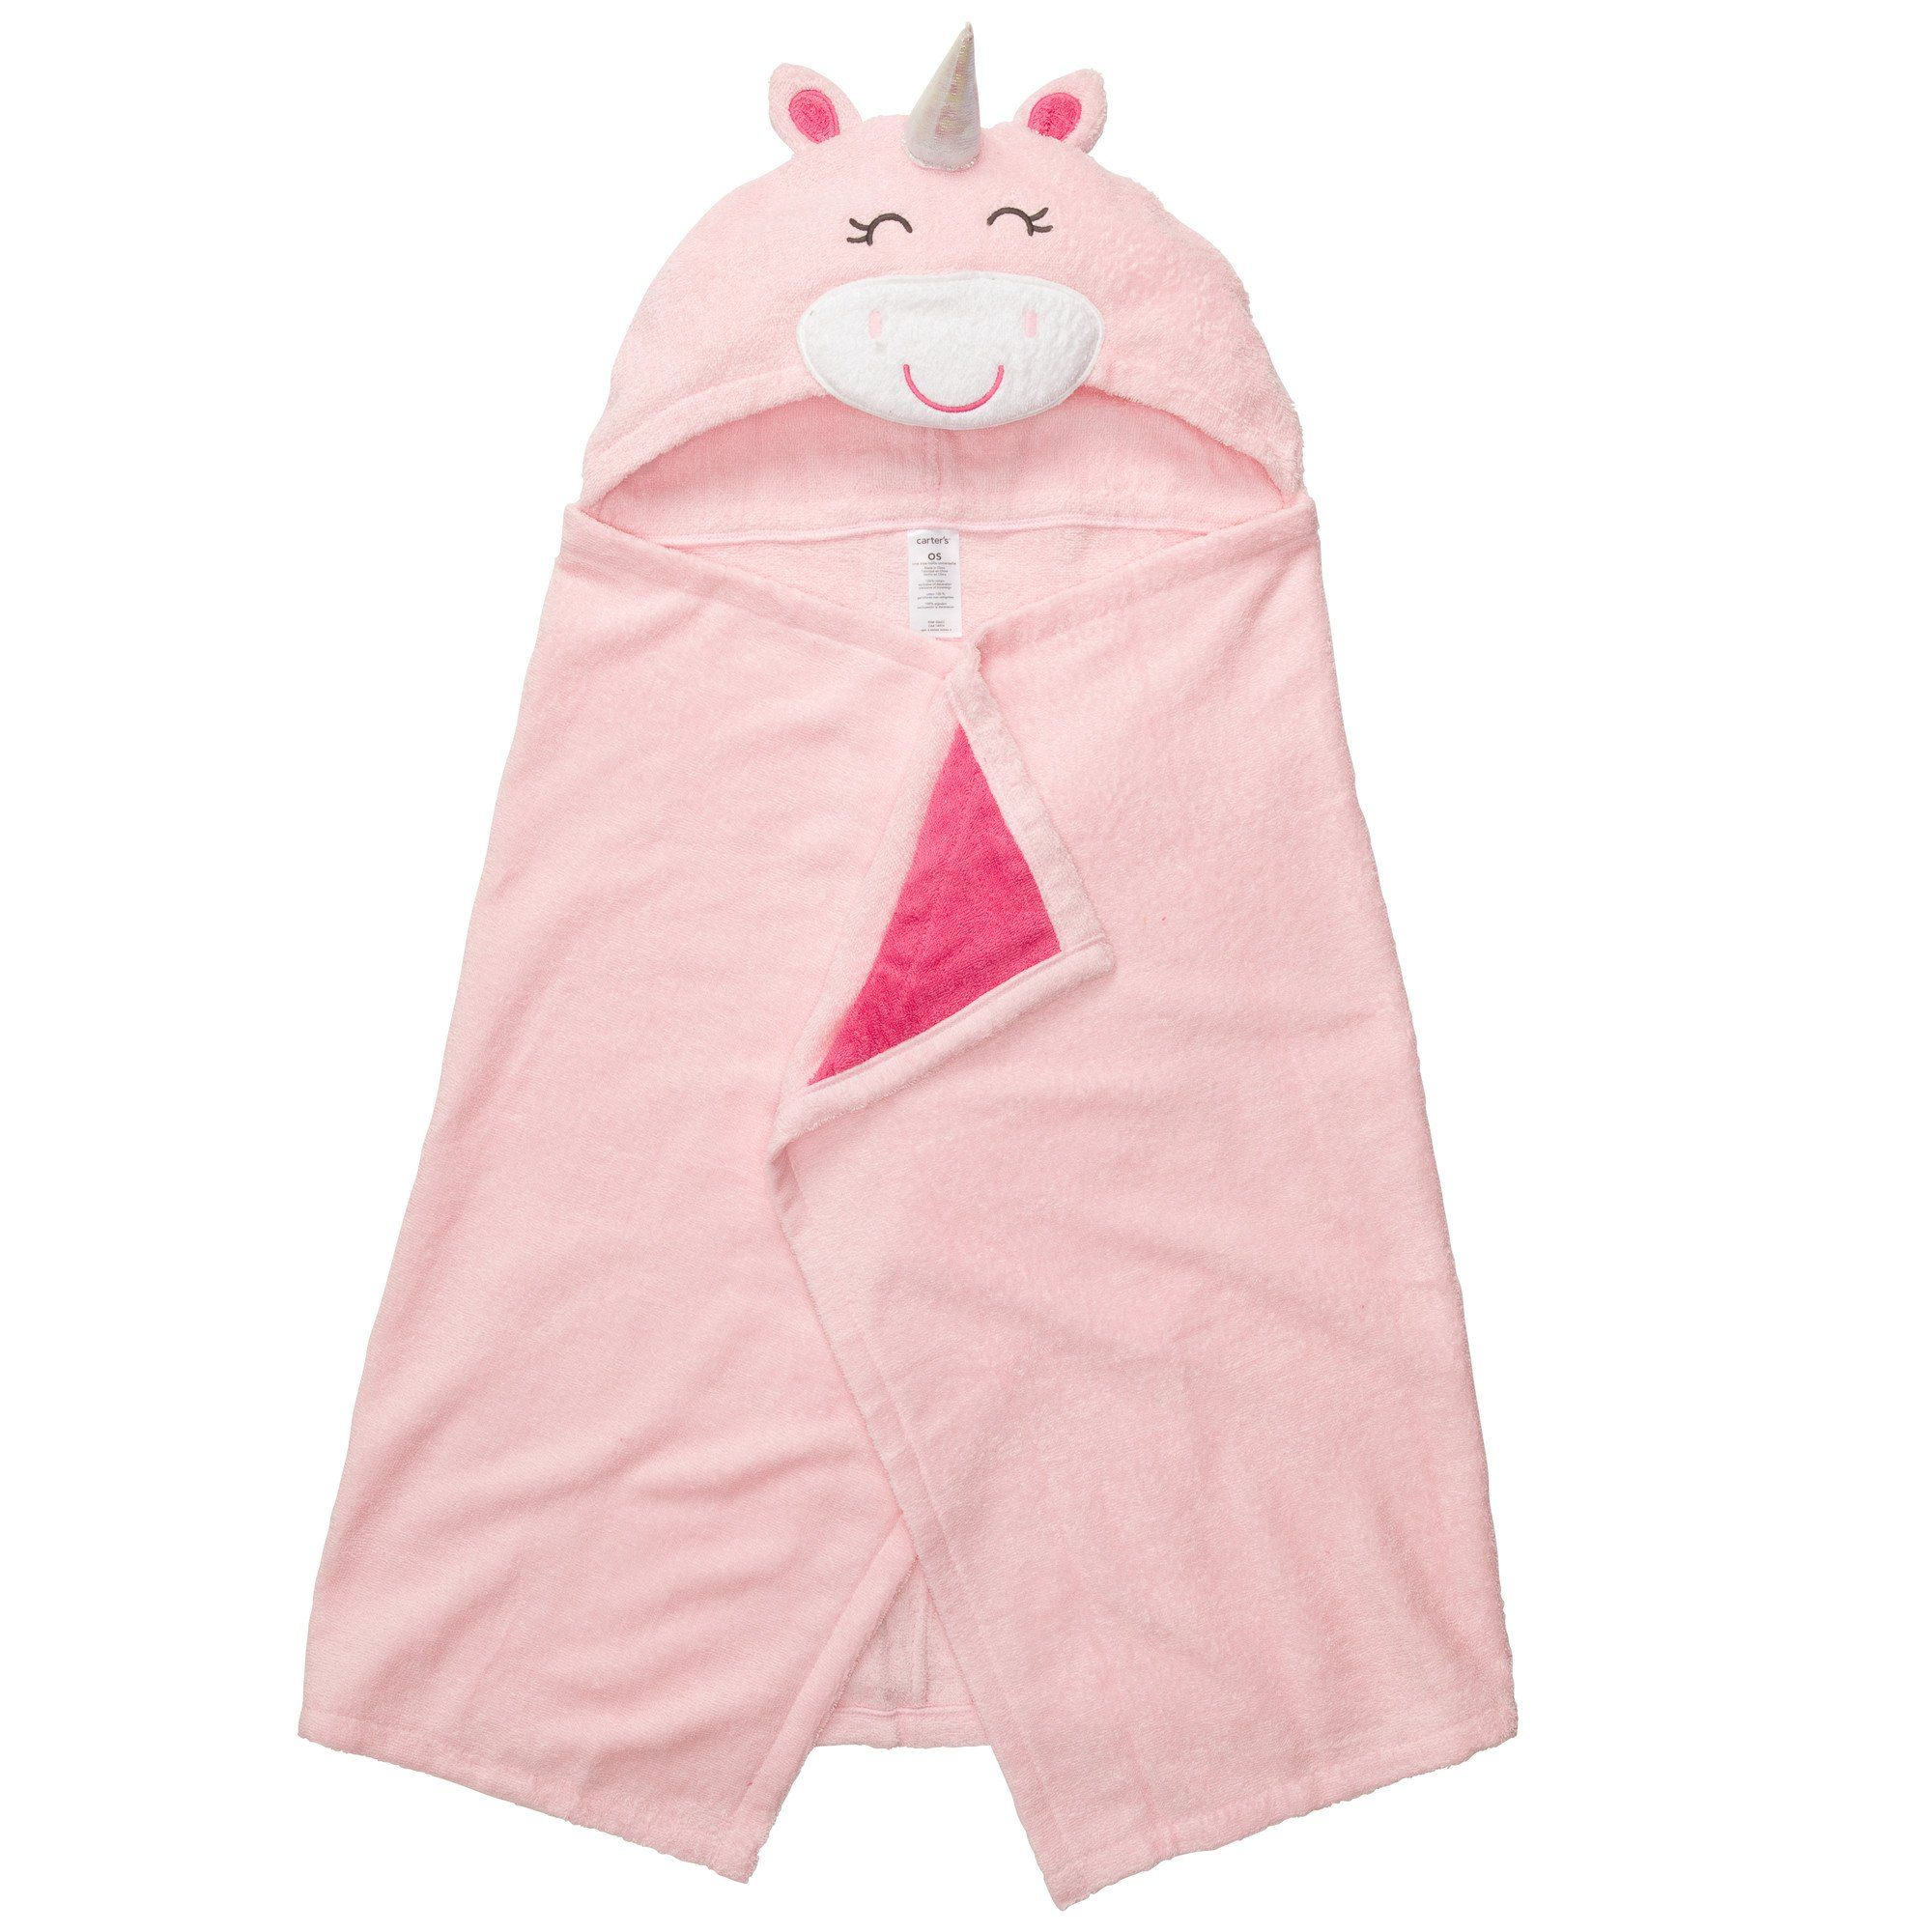 Amazon Com Carter S Hooded Towel For Babies And Infants Pink